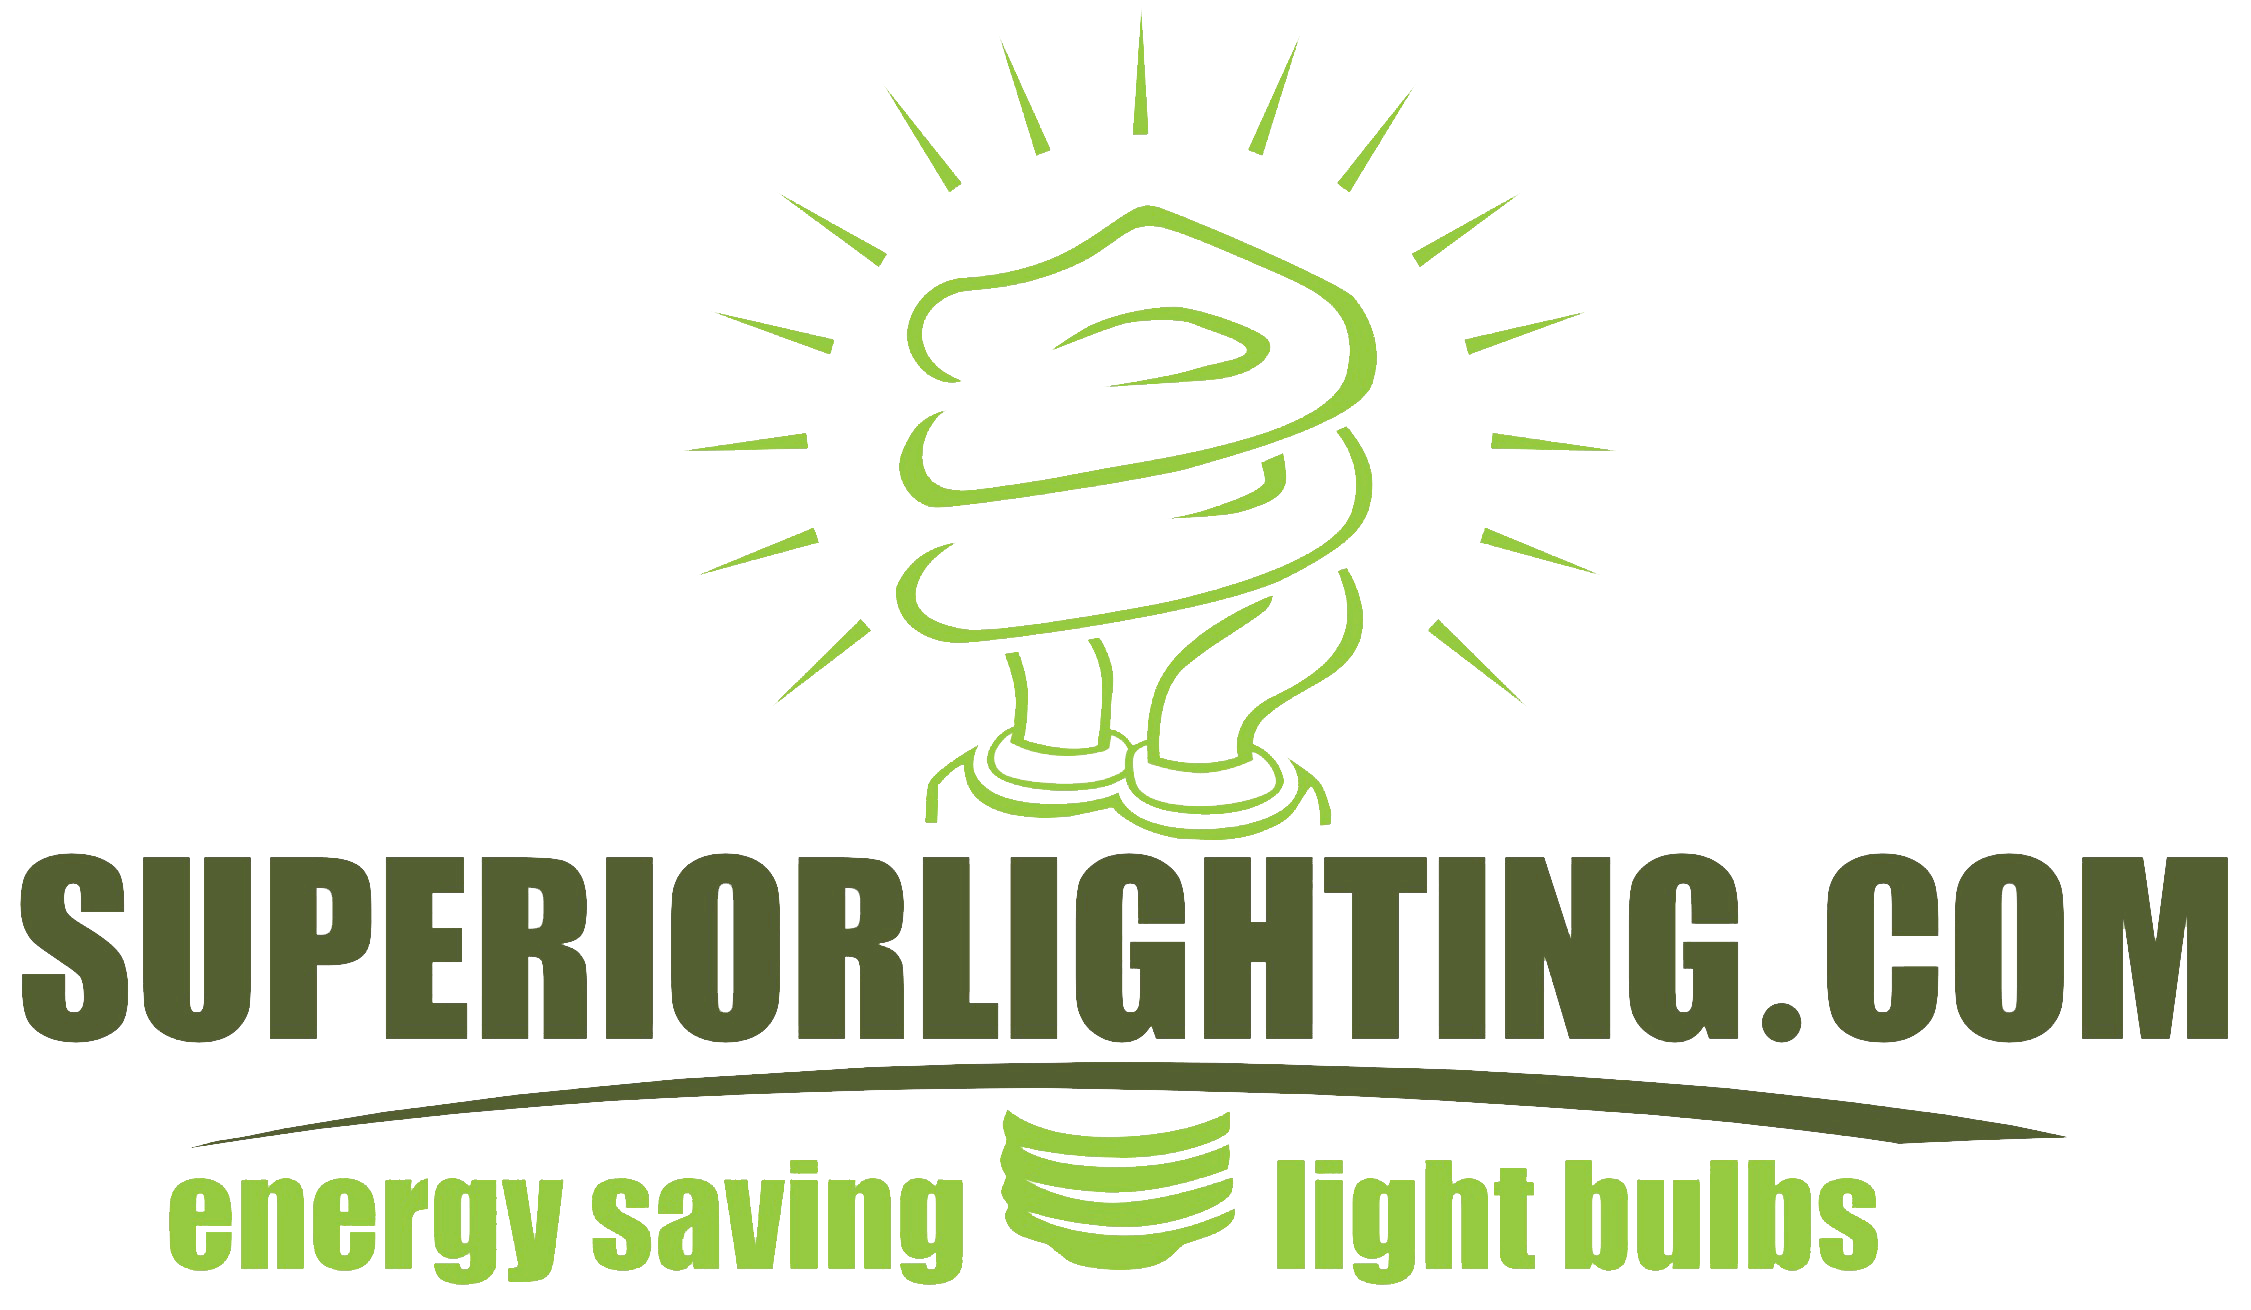 superiorlighting logo